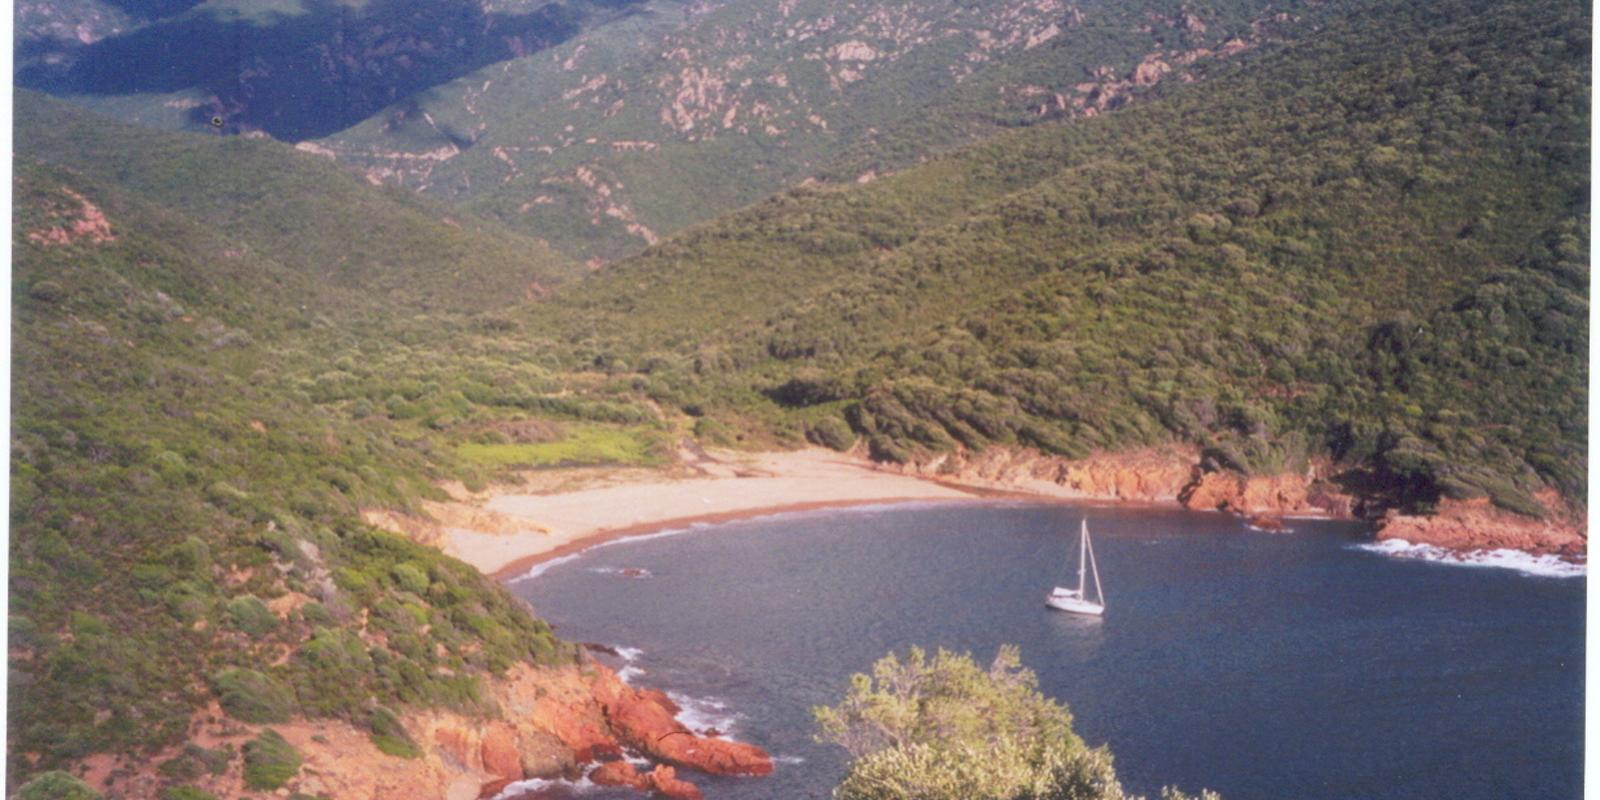 From Sardinia to Corsica: two different continents ... ONE WAY